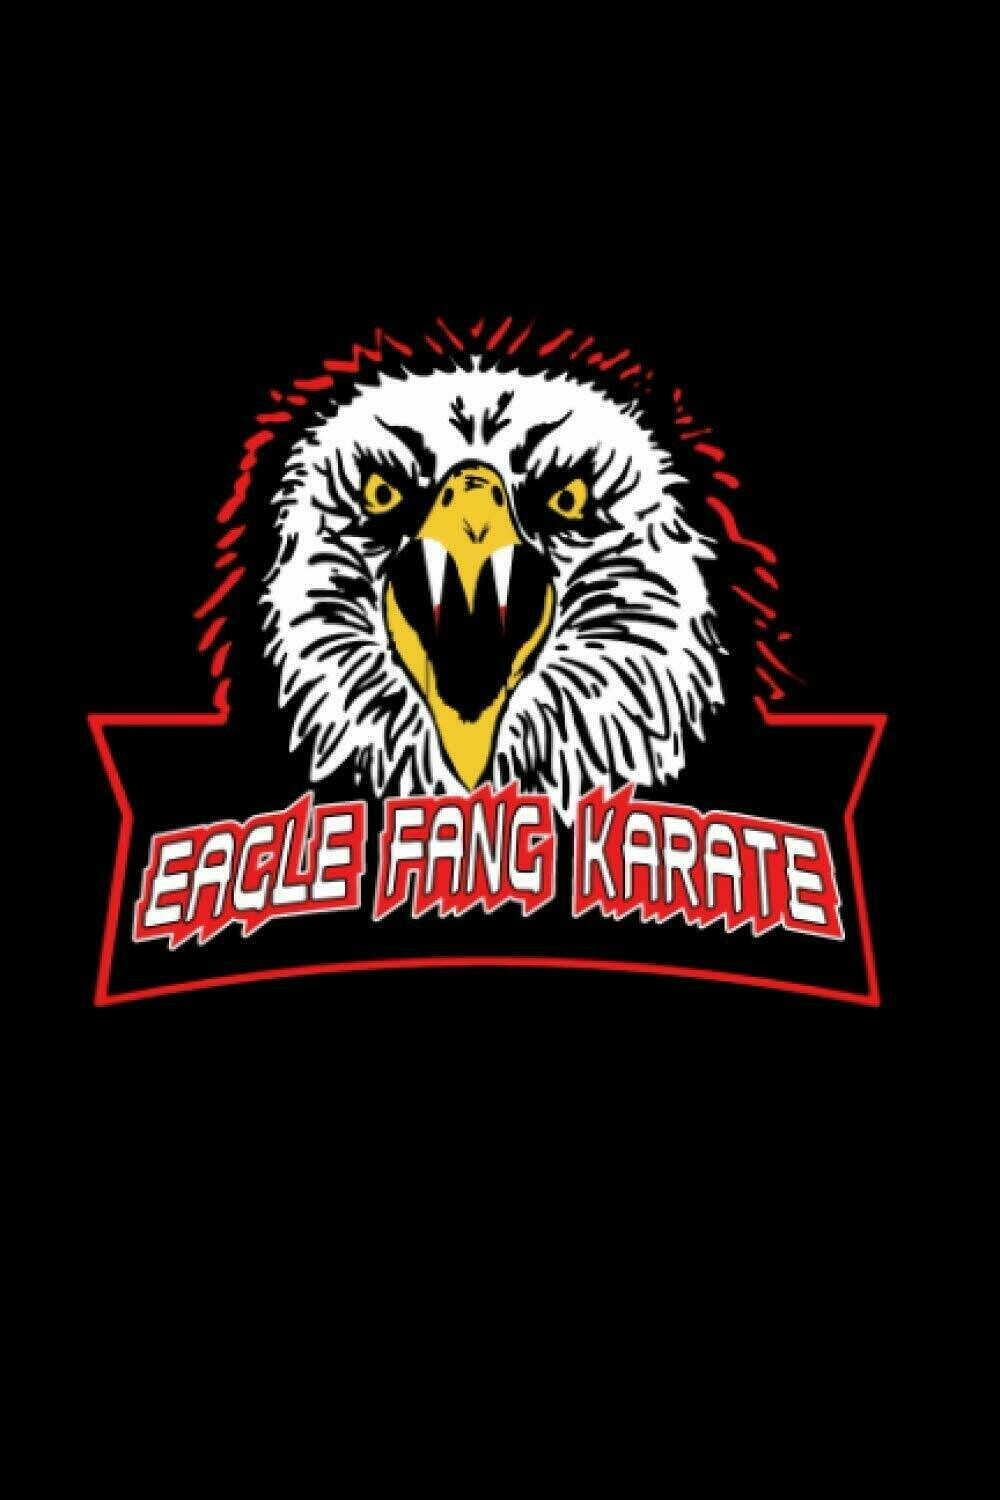 Eagle Fang Karate (Cobra Kai / Johnny Lawrence) Luxury Lined Journal - Notebook Diary Writing Pad Book Movie Prop Replica